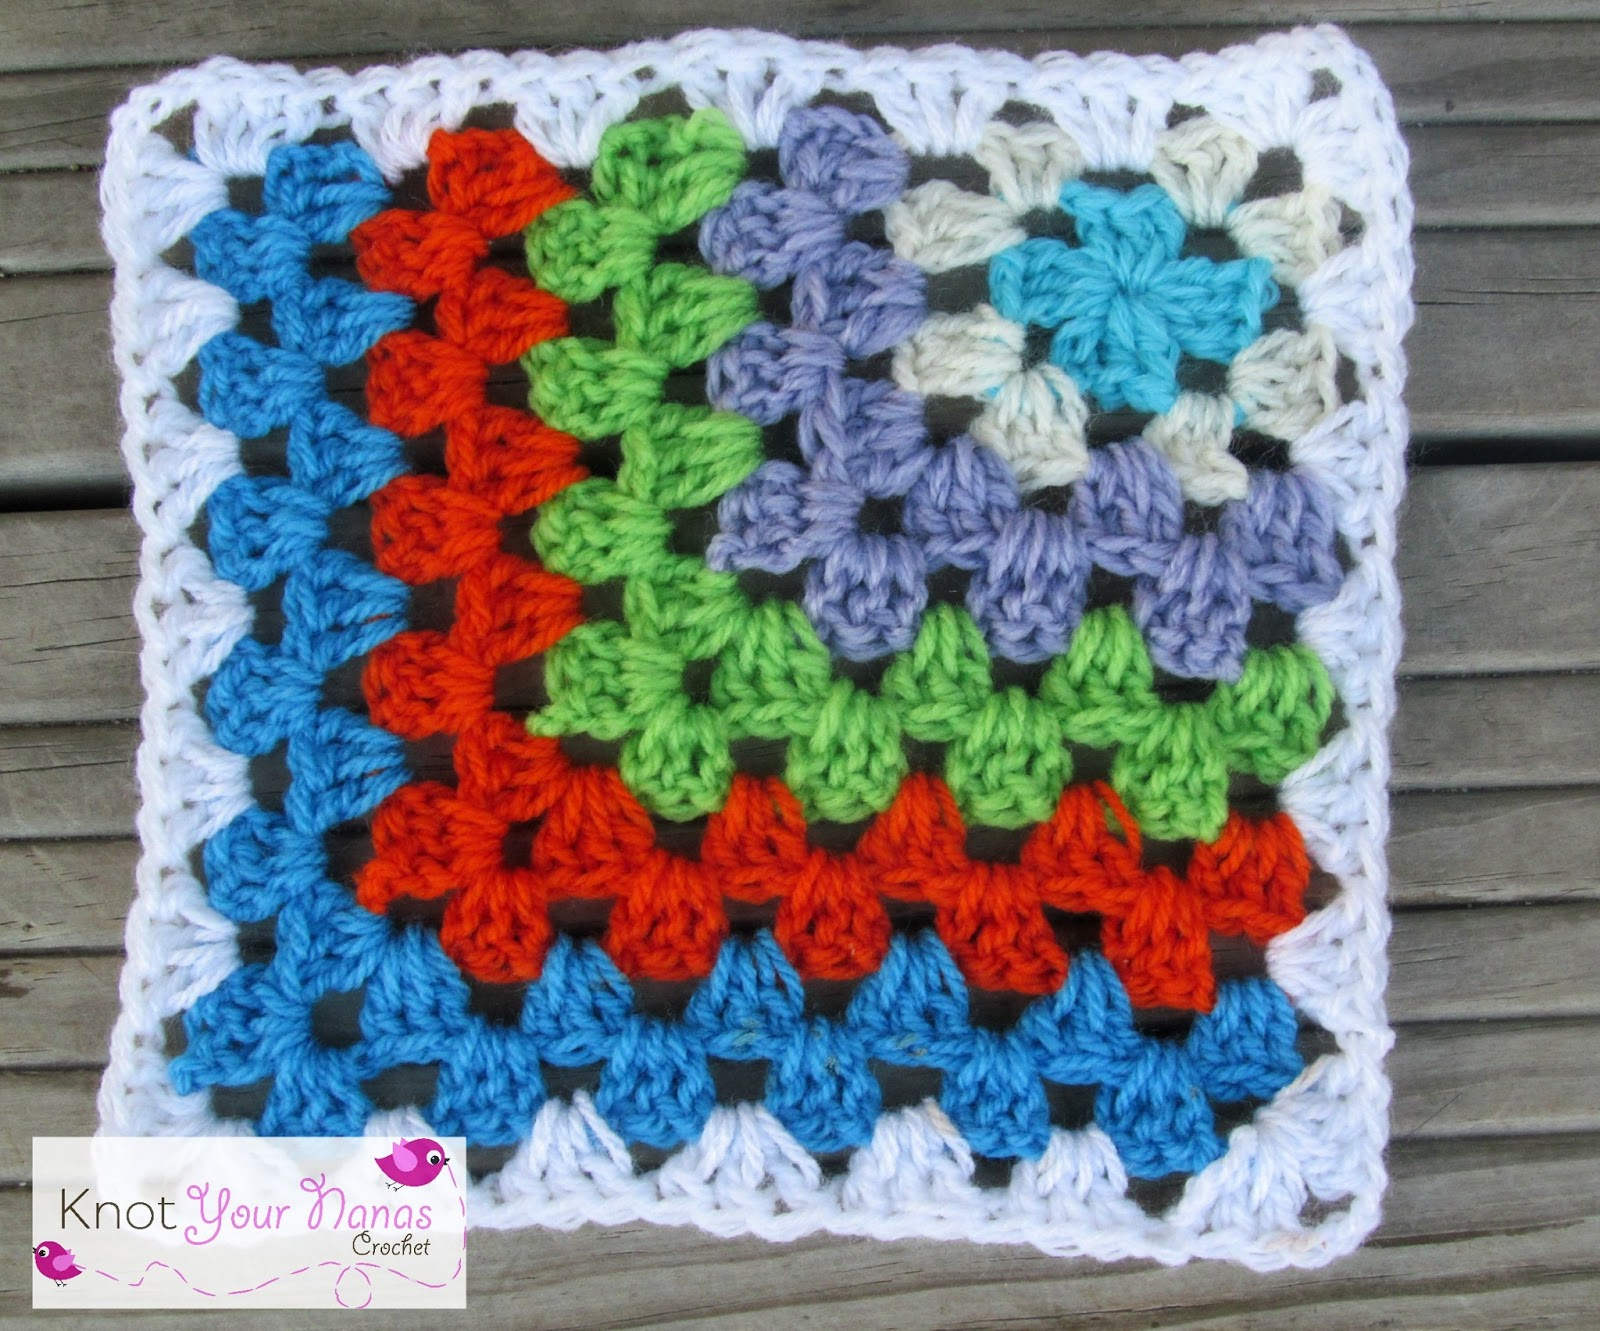 Crocheting Granny Squares Together Video : Knot Your Nanas Crochet: Granny Square Crochet Along Revisited (Week ...